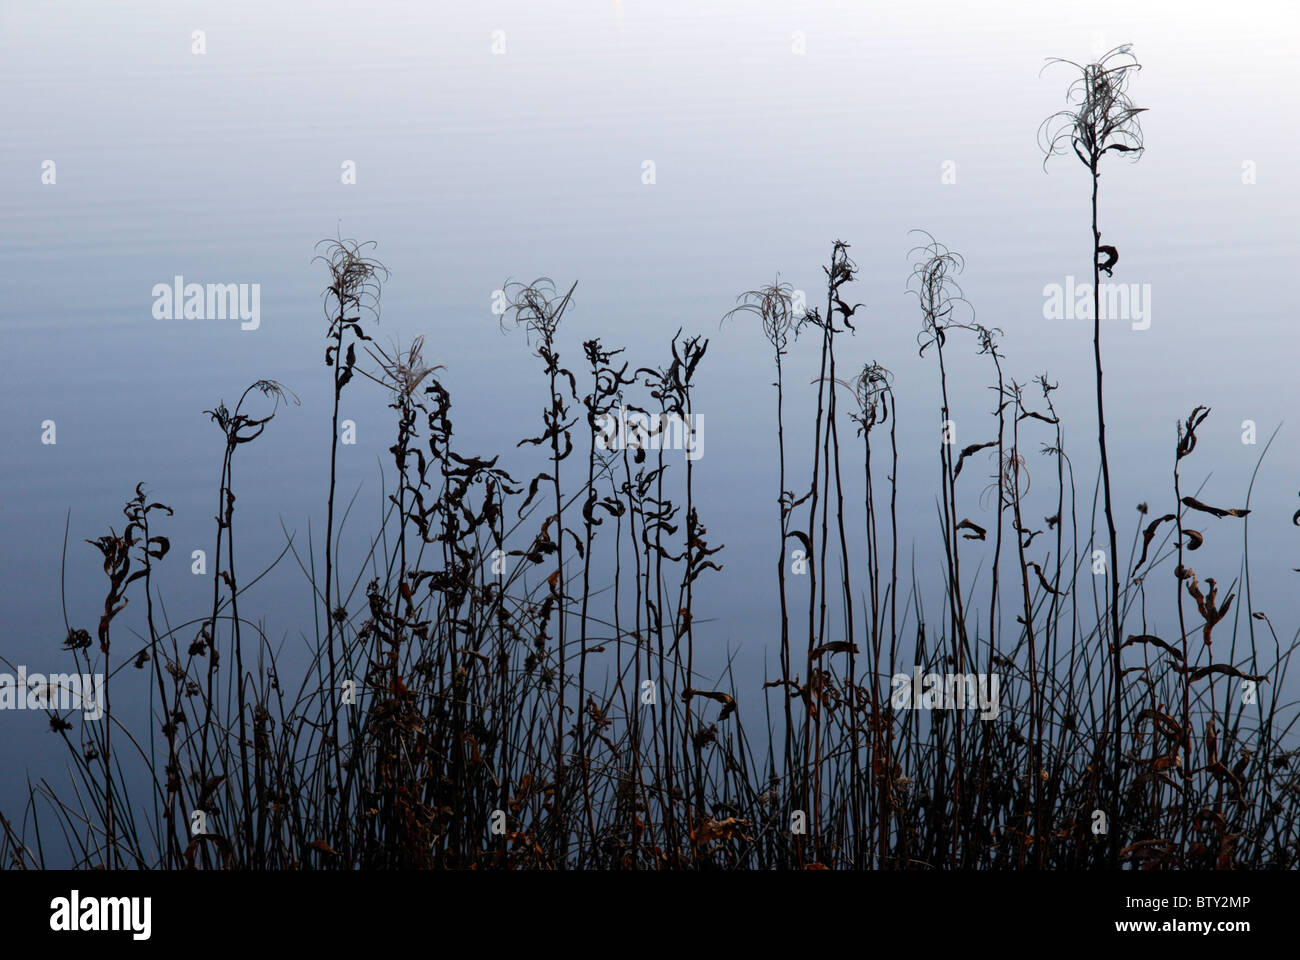 Reeds and other plants of the water margin at Bwlch Nant-yr-Arian, Ceredigion, mid Wales. - Stock Image